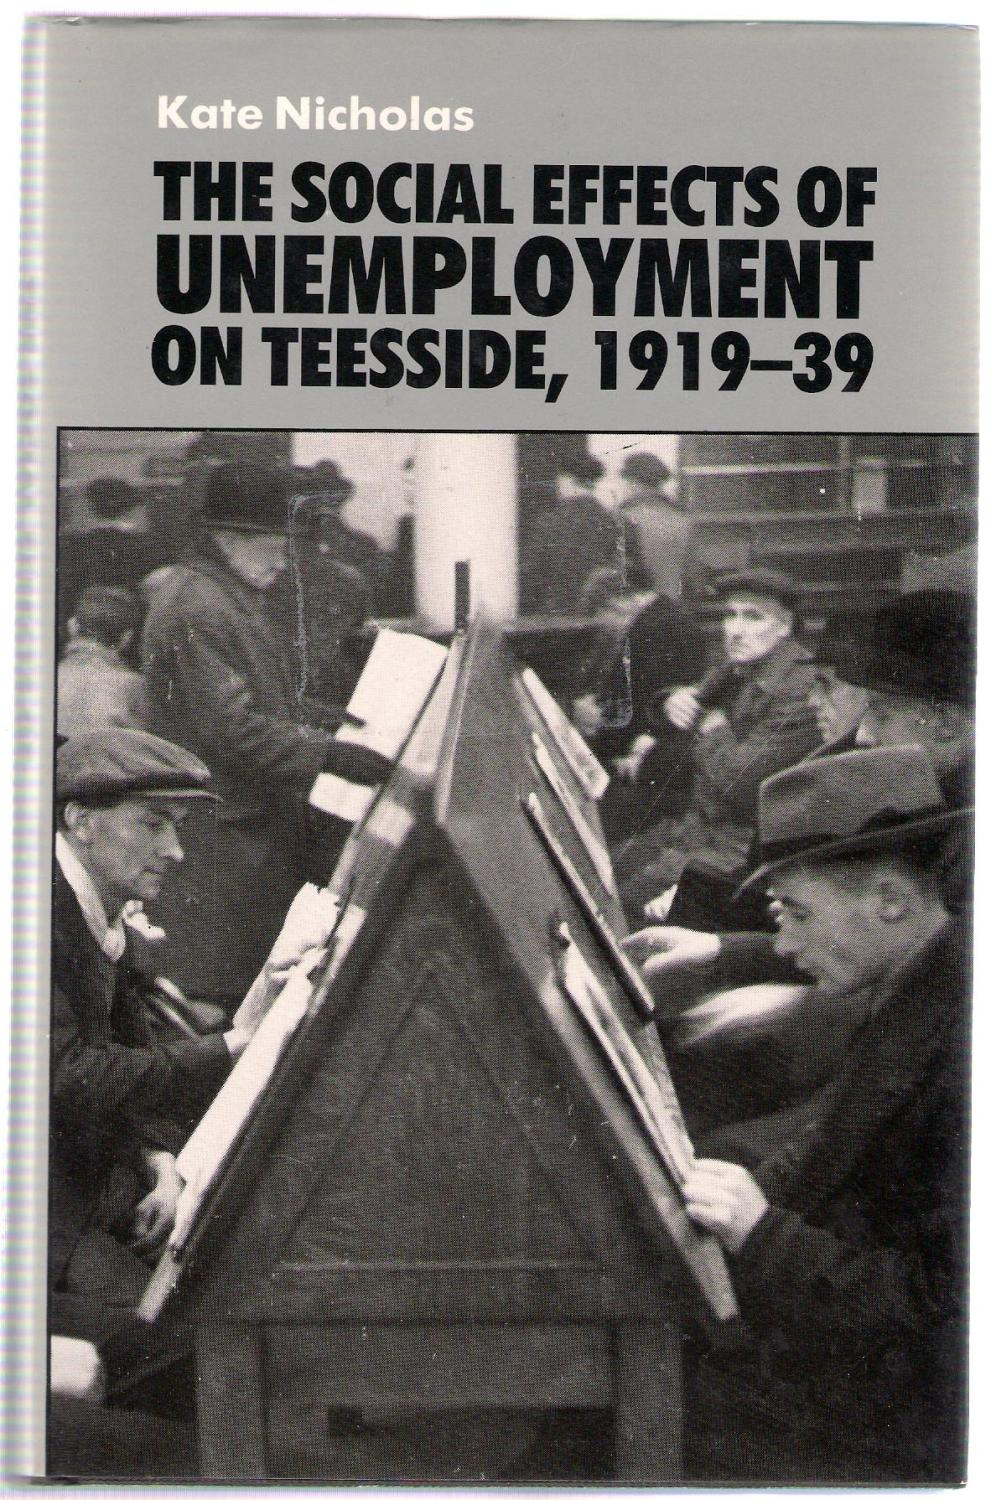 the social effects of unemployment on teesside by the social effects of unemployment on teesside 1919 39 nicholas kate